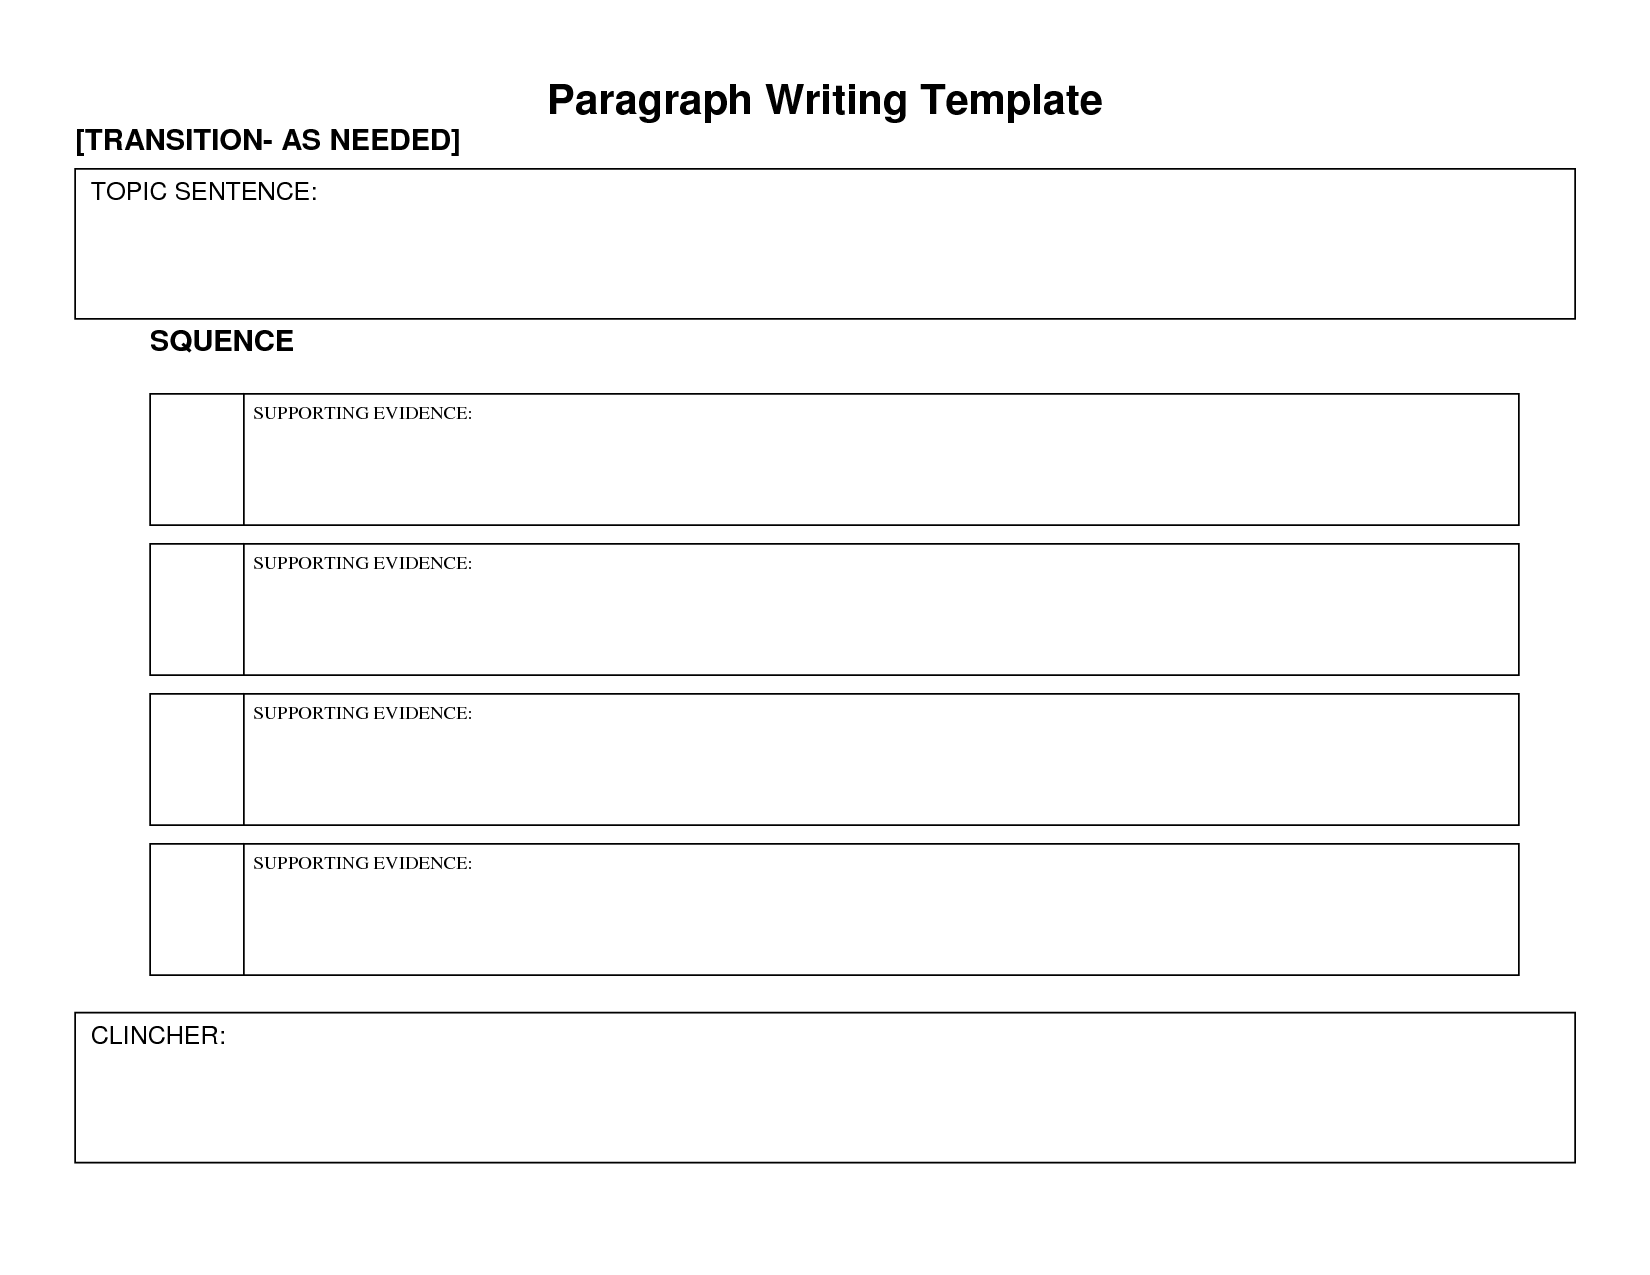 Story Outline Templates Worksheets Quality Images | iPhoto Pick